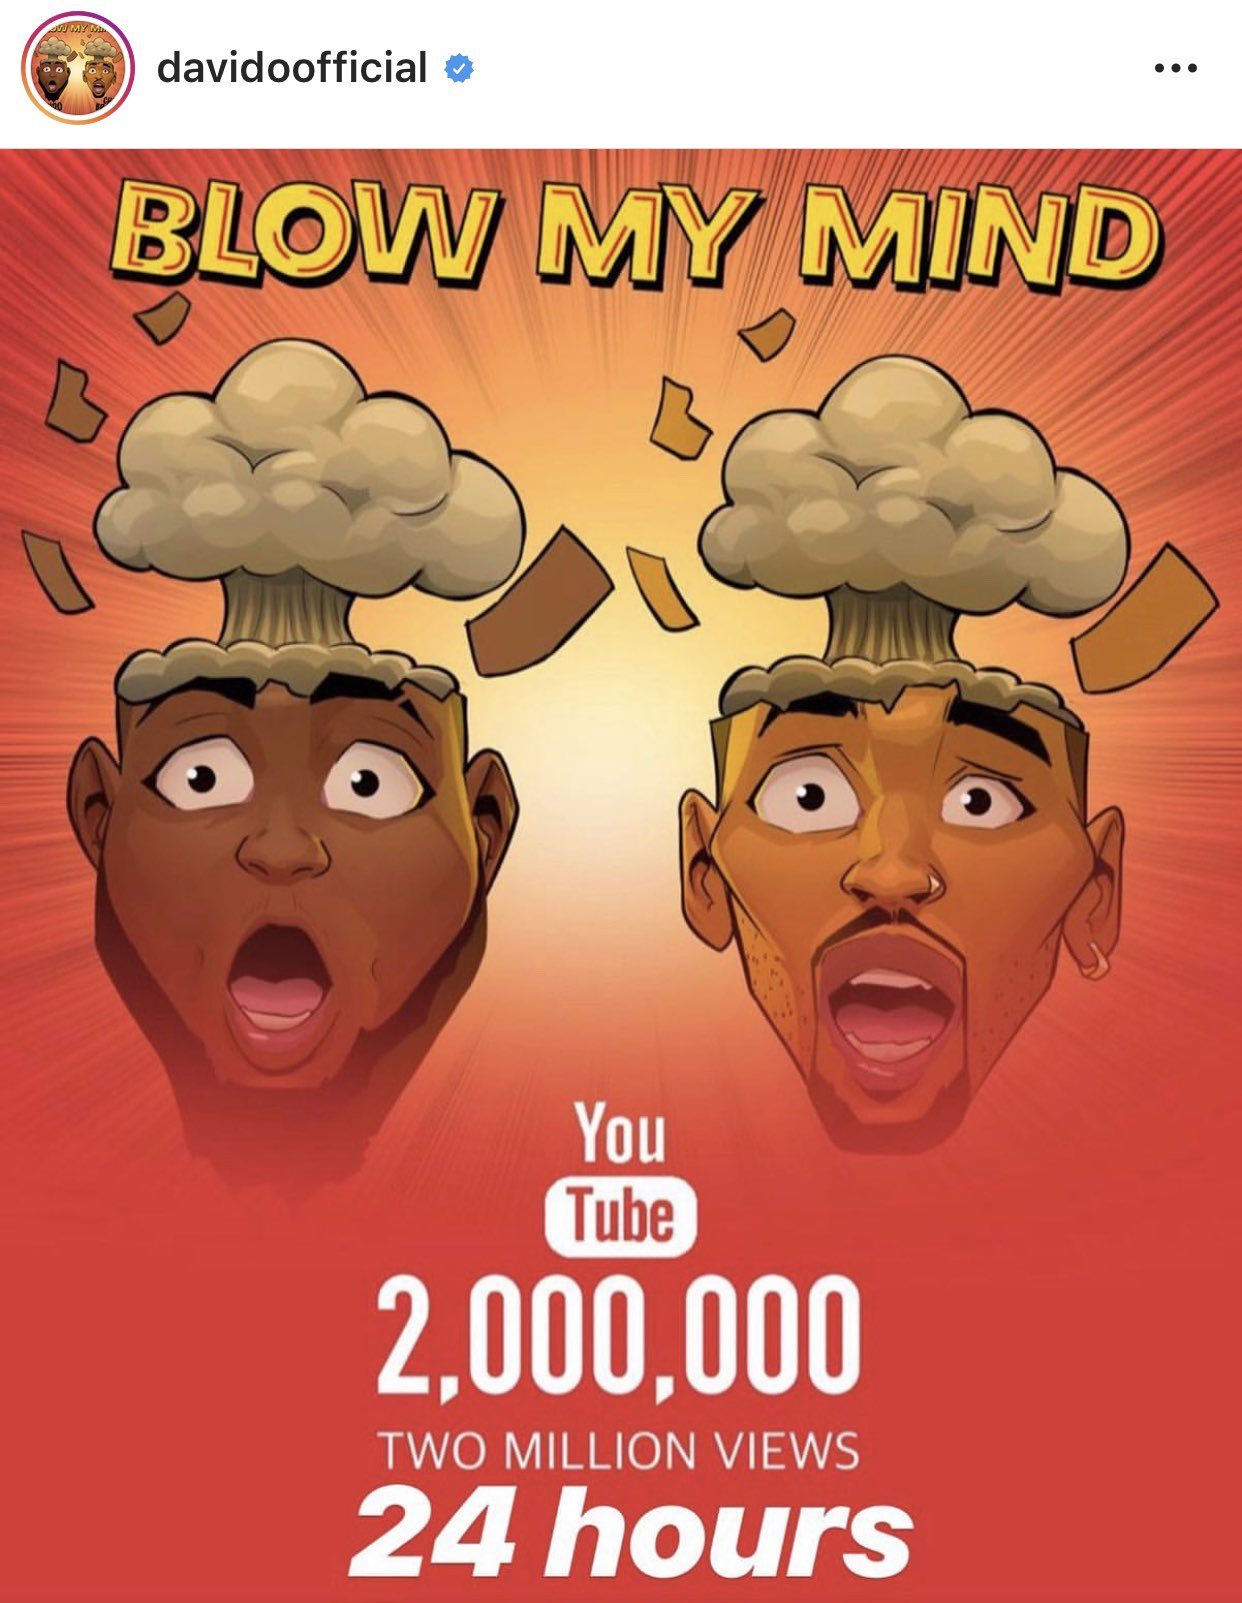 Davido's Blow My Mind Video Hits 2Million Views In 24 Hours